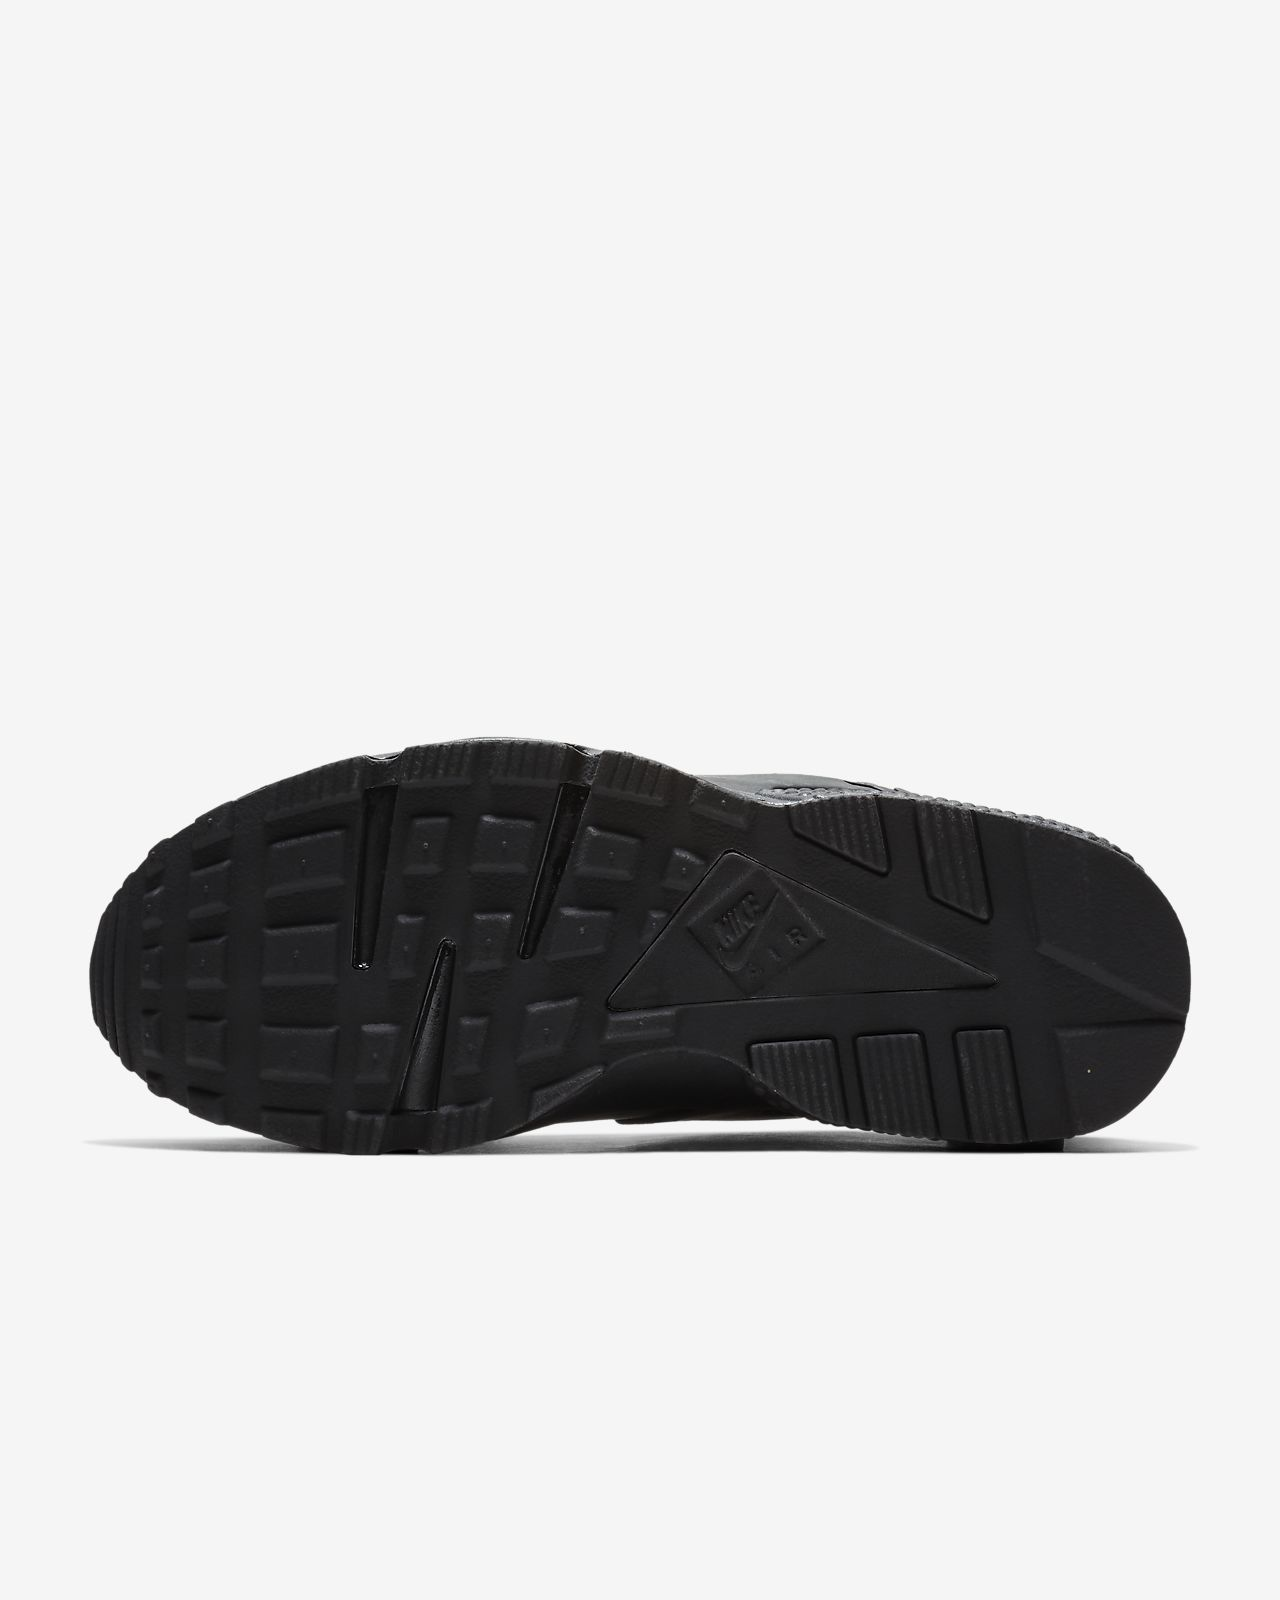 info for d11b4 37f3c ... Nike Air Huarache Womens Shoe